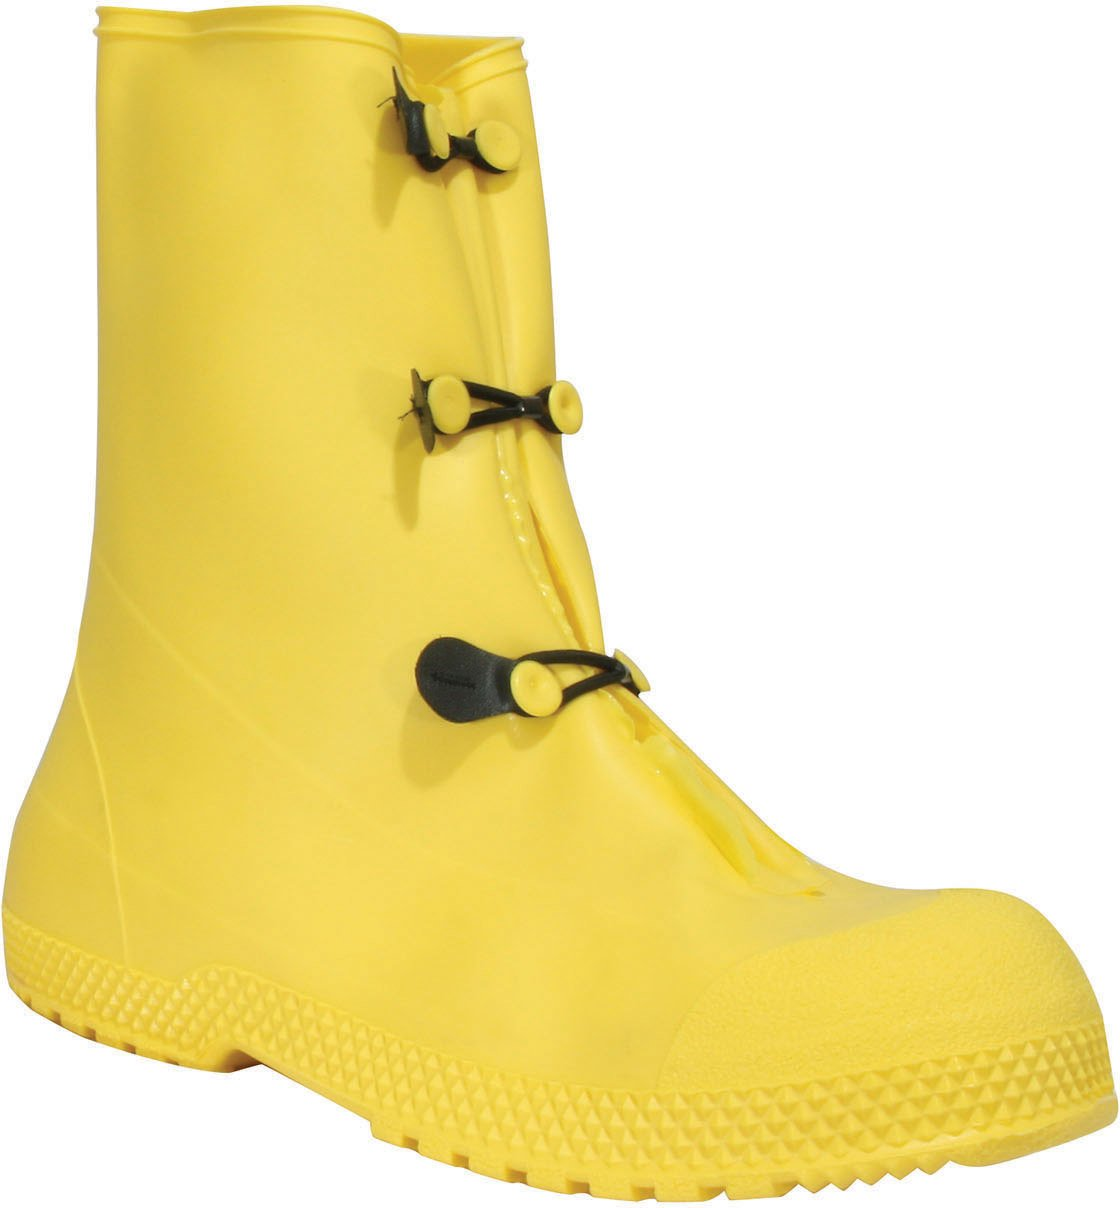 Servus SuperFit 12'' PVC Dual Compound Men's Overboots, Yellow (11926-Bagged) by Honeywell